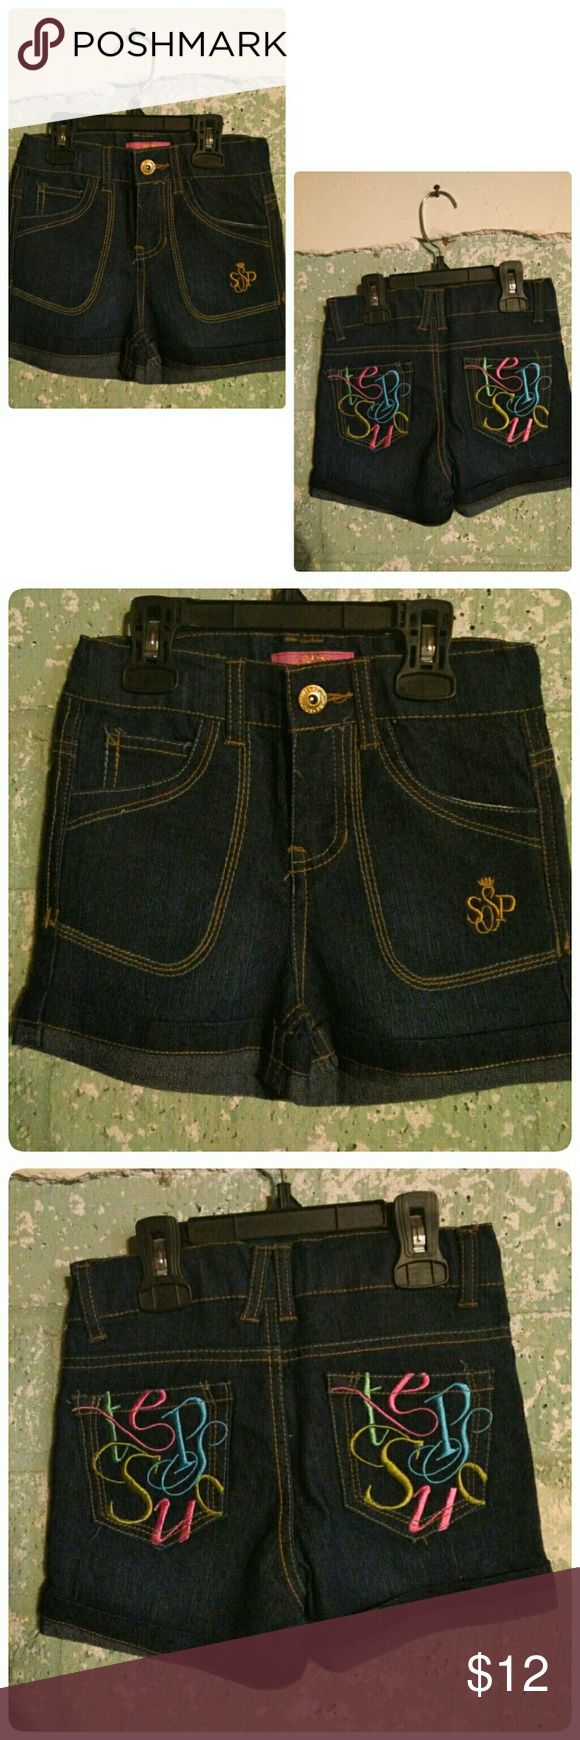 Girls jean shorts NWOT girls jean shorts super cute. South Pole Bottoms Shorts